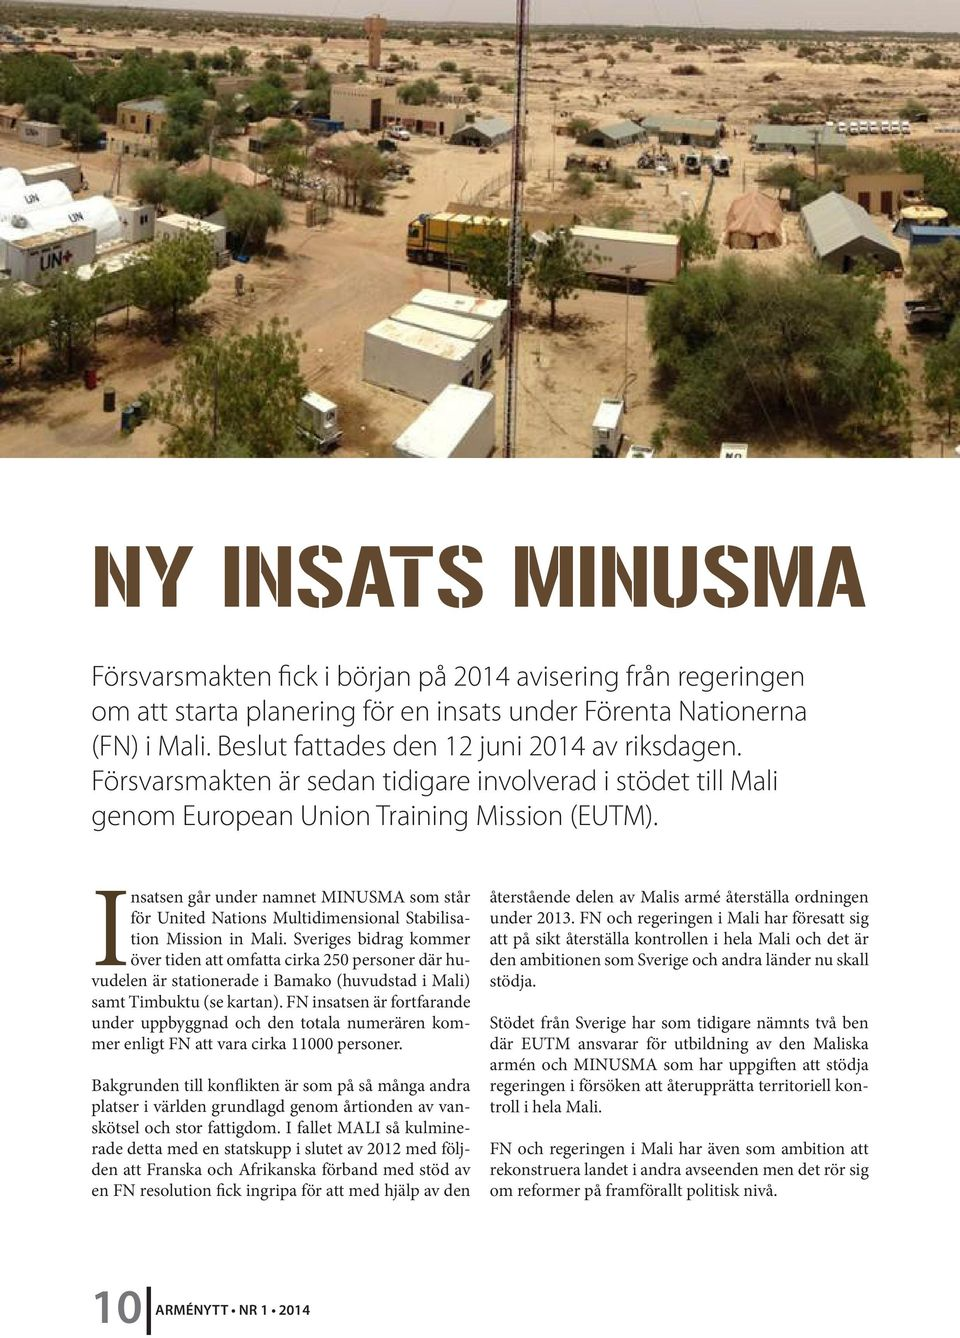 Insatsen går under namnet MINUSMA som står för United Nations Multidimensional Stabilisation Mission in Mali.